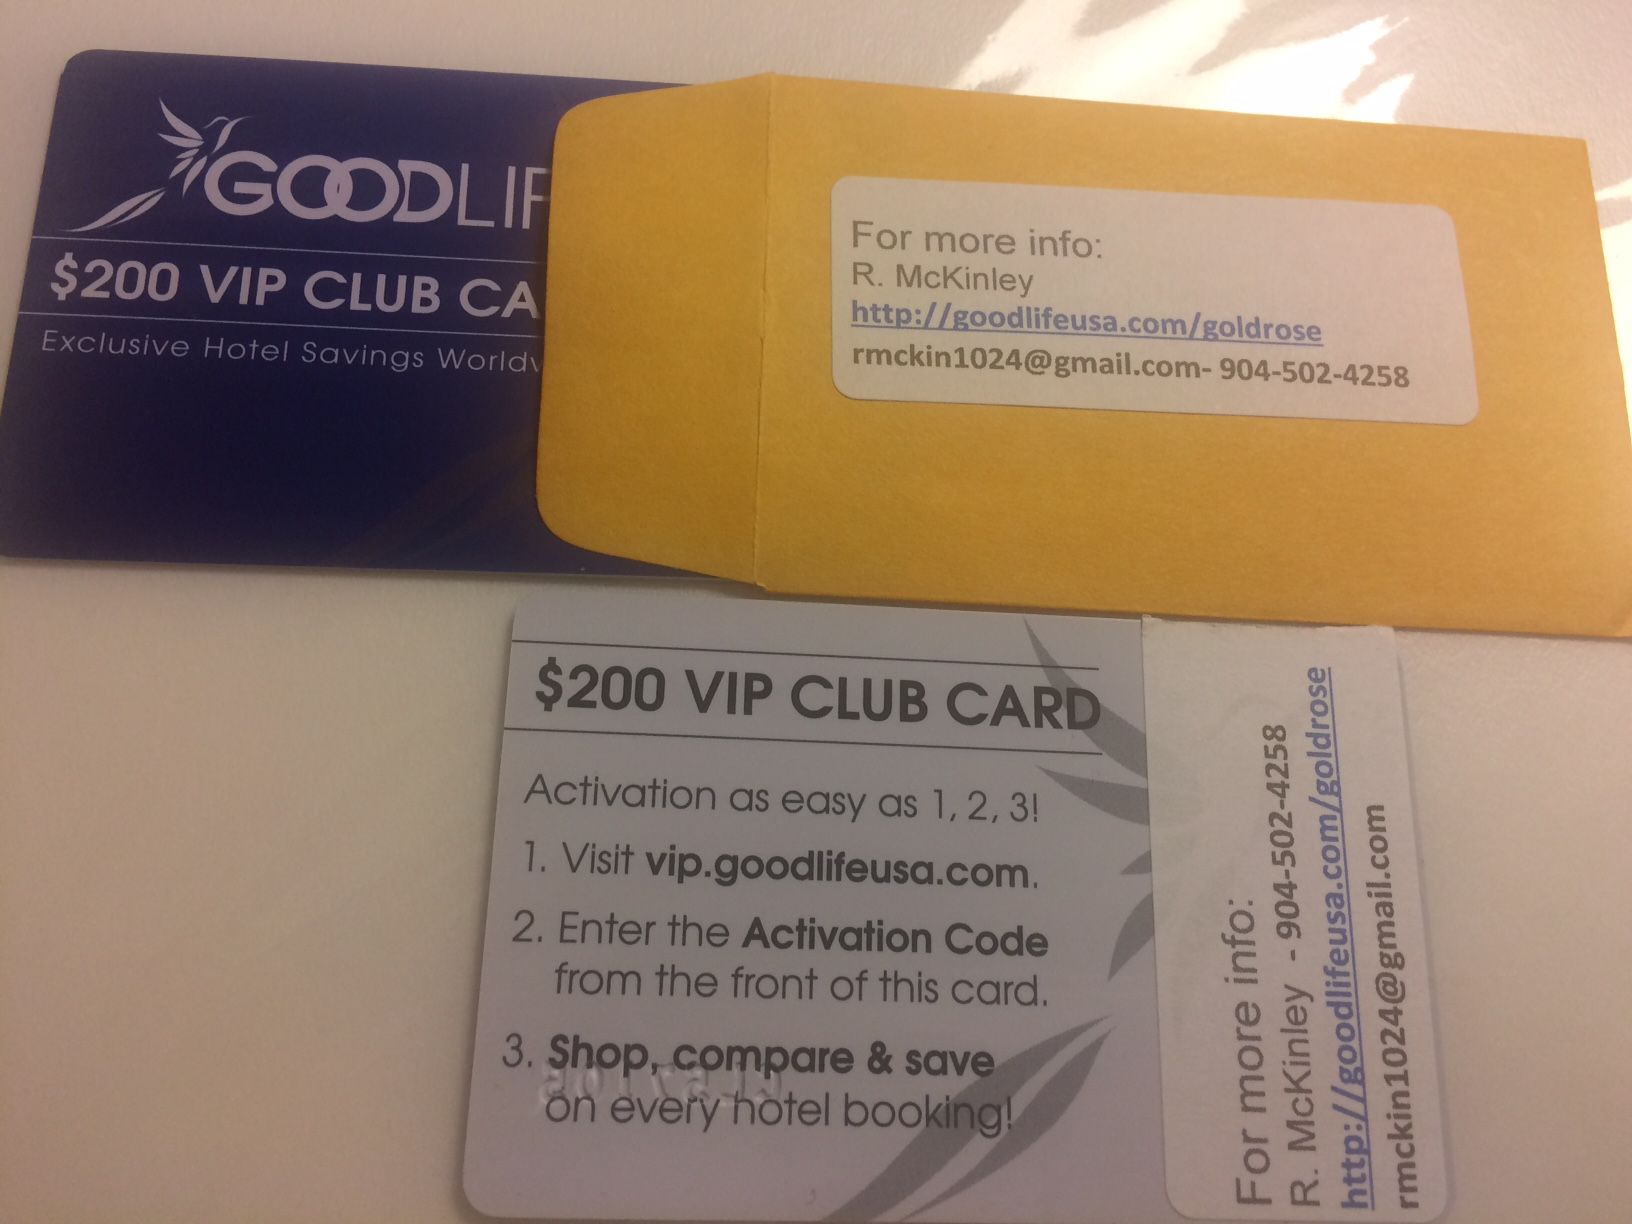 Free per your request club card cards cards against